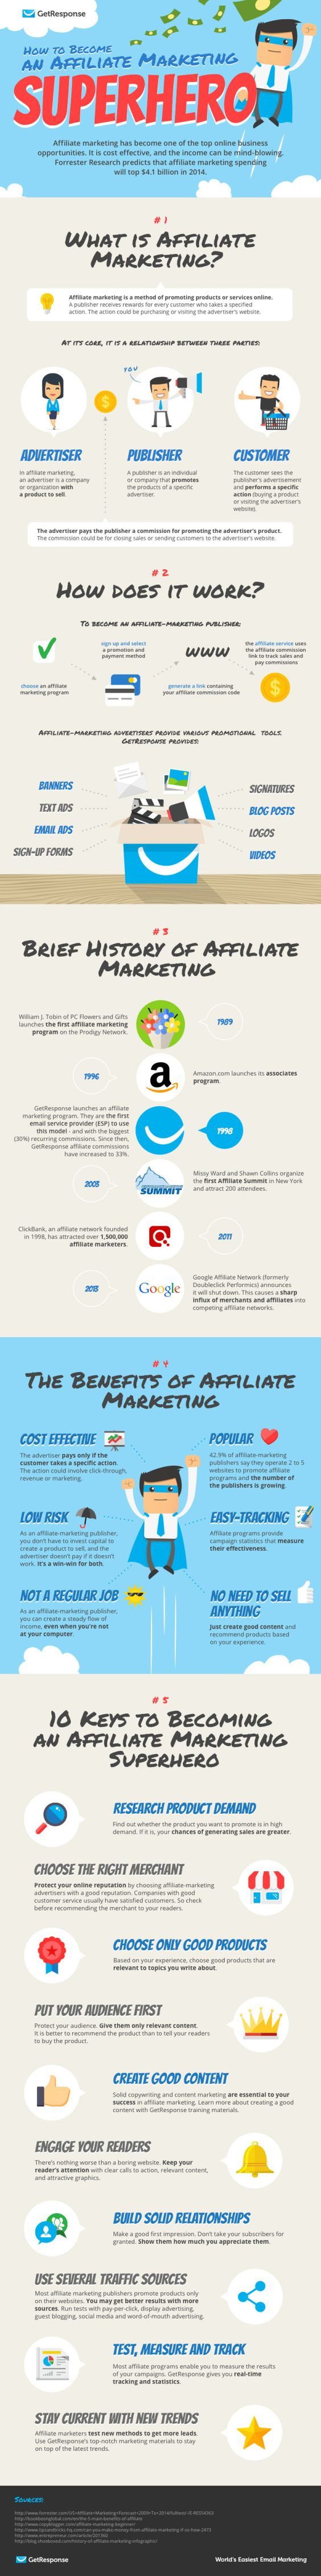 How to become an affiliate marketing superhero (Infographic)